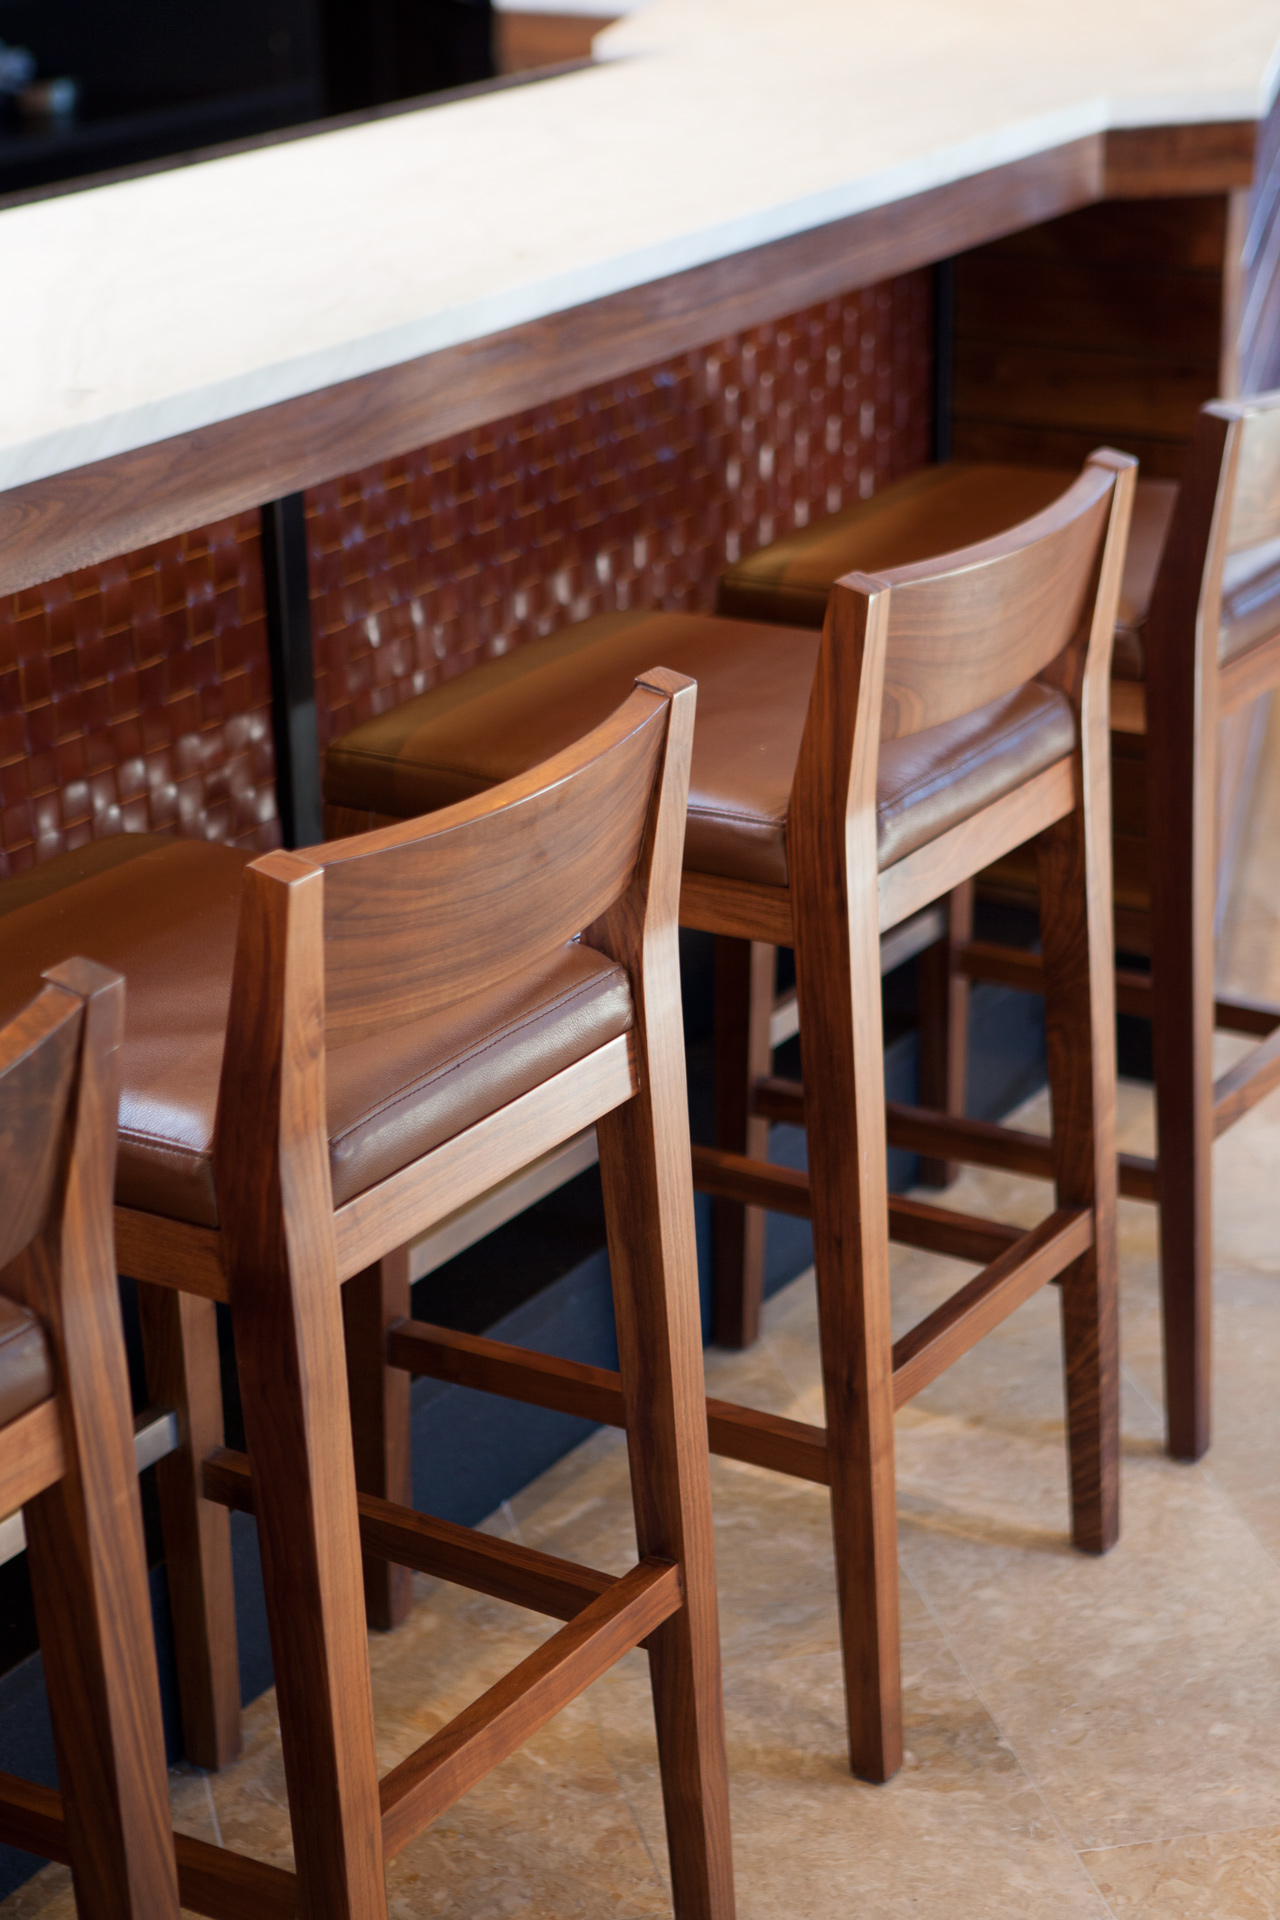 Close up of two brown wooden barstools with brown leather seats. The stools are at a brown wooden bar with white marble bar top. Barrel House Tavern, Sausalito, California